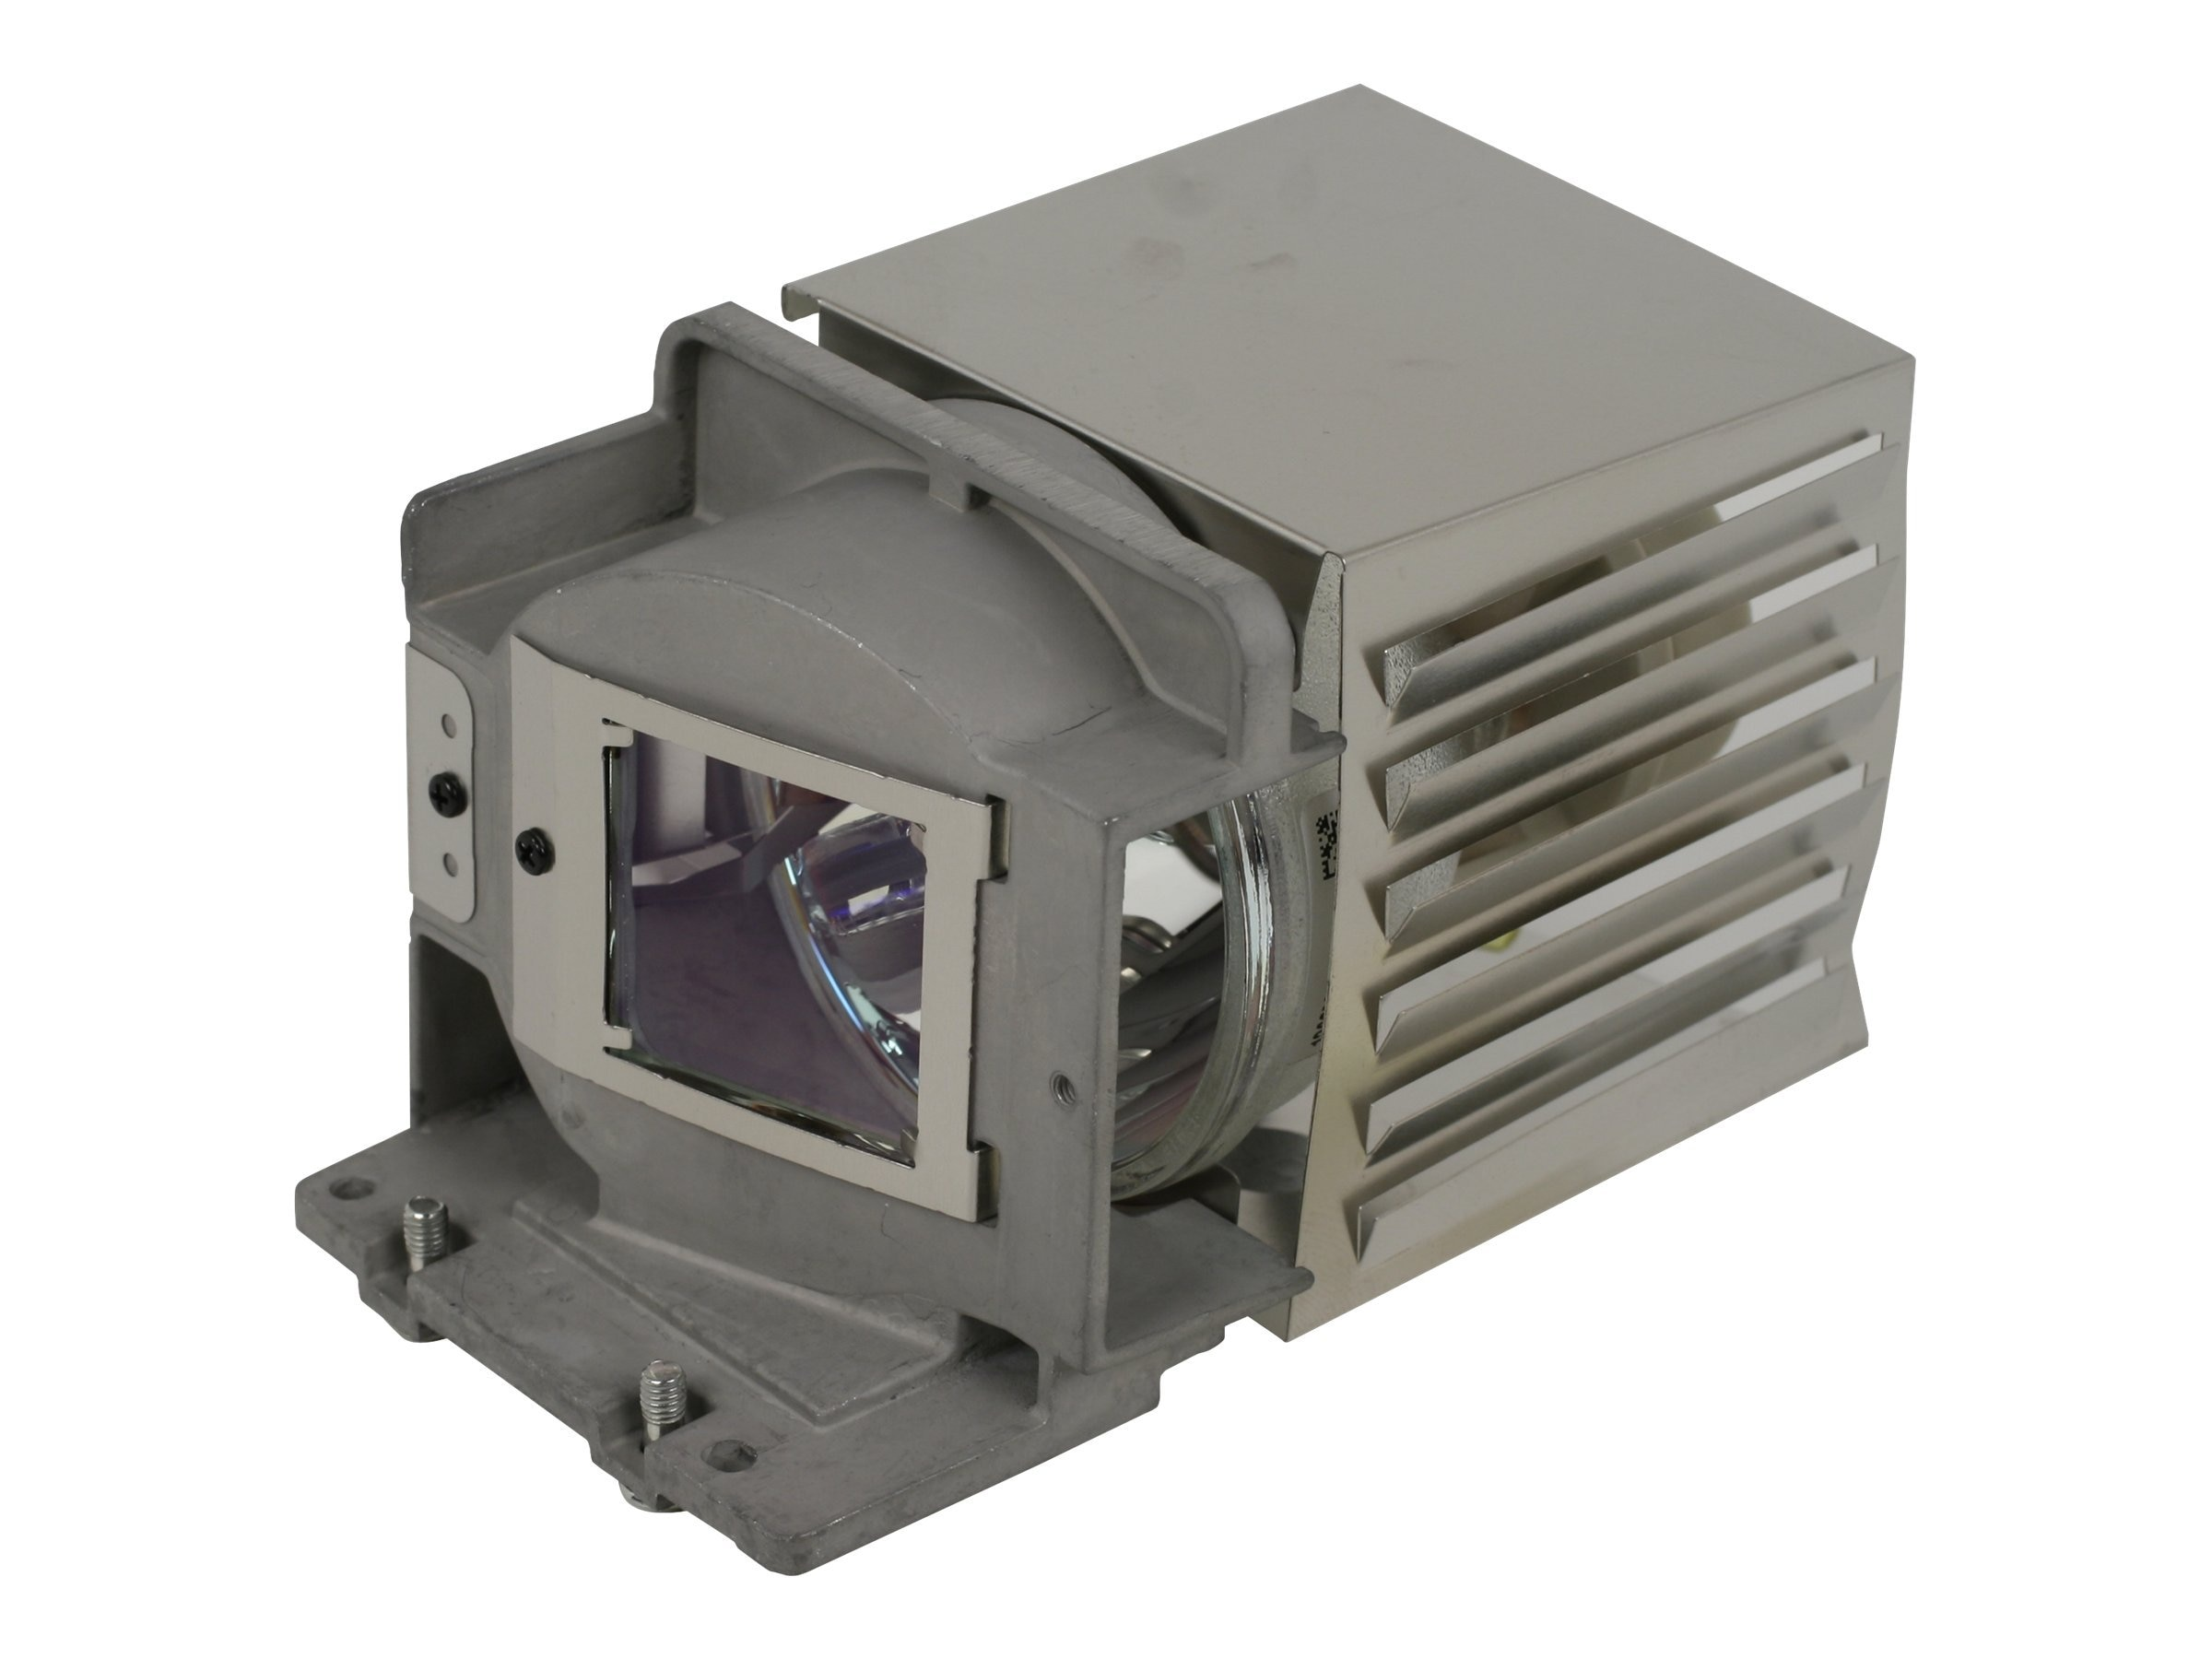 Optoma Replacement Lamp for TX631-3D, TW631-3D